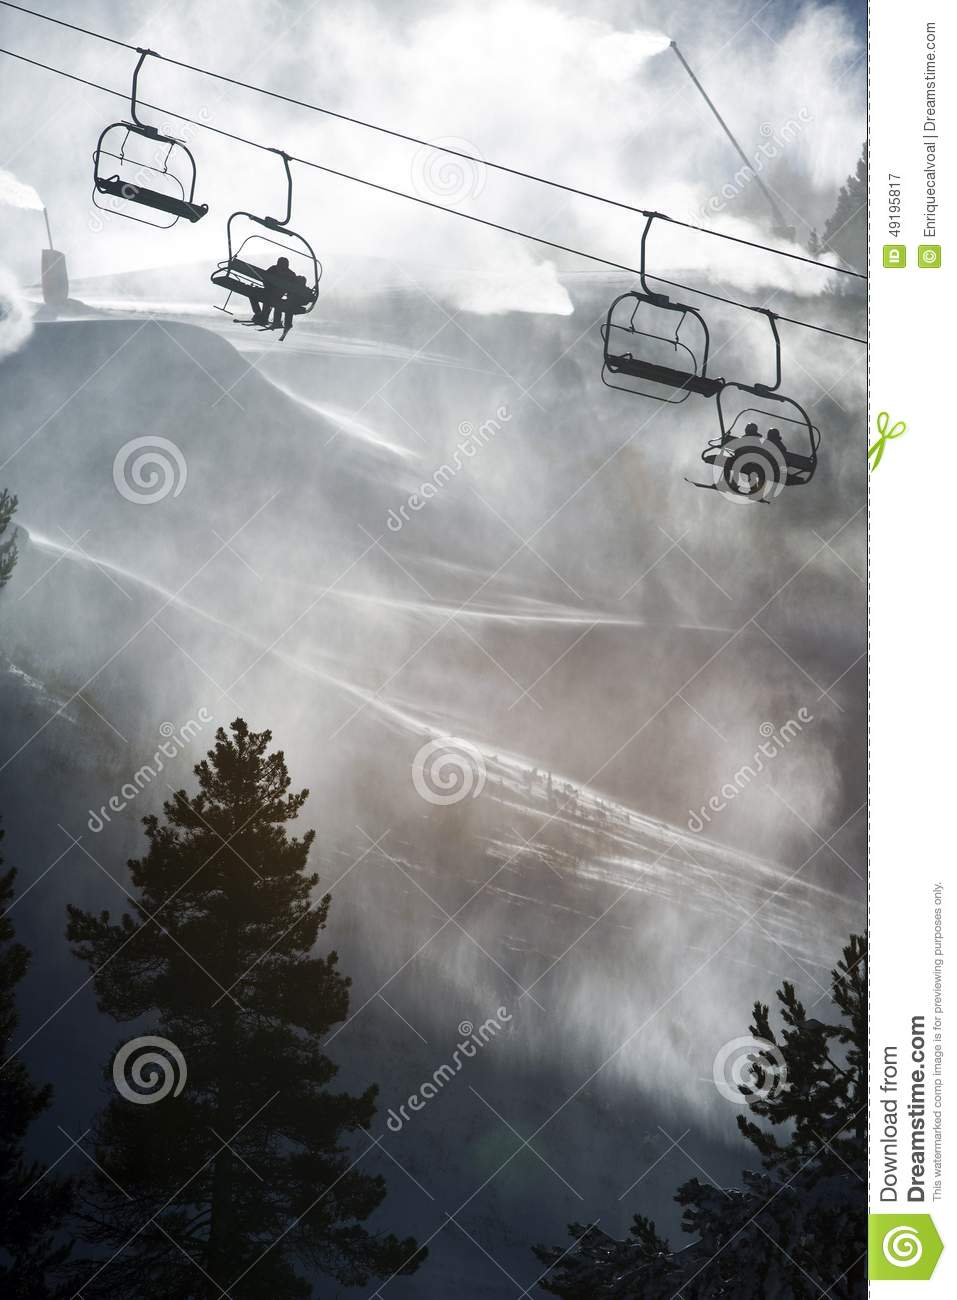 Chairlifts climbing to top of ski resort